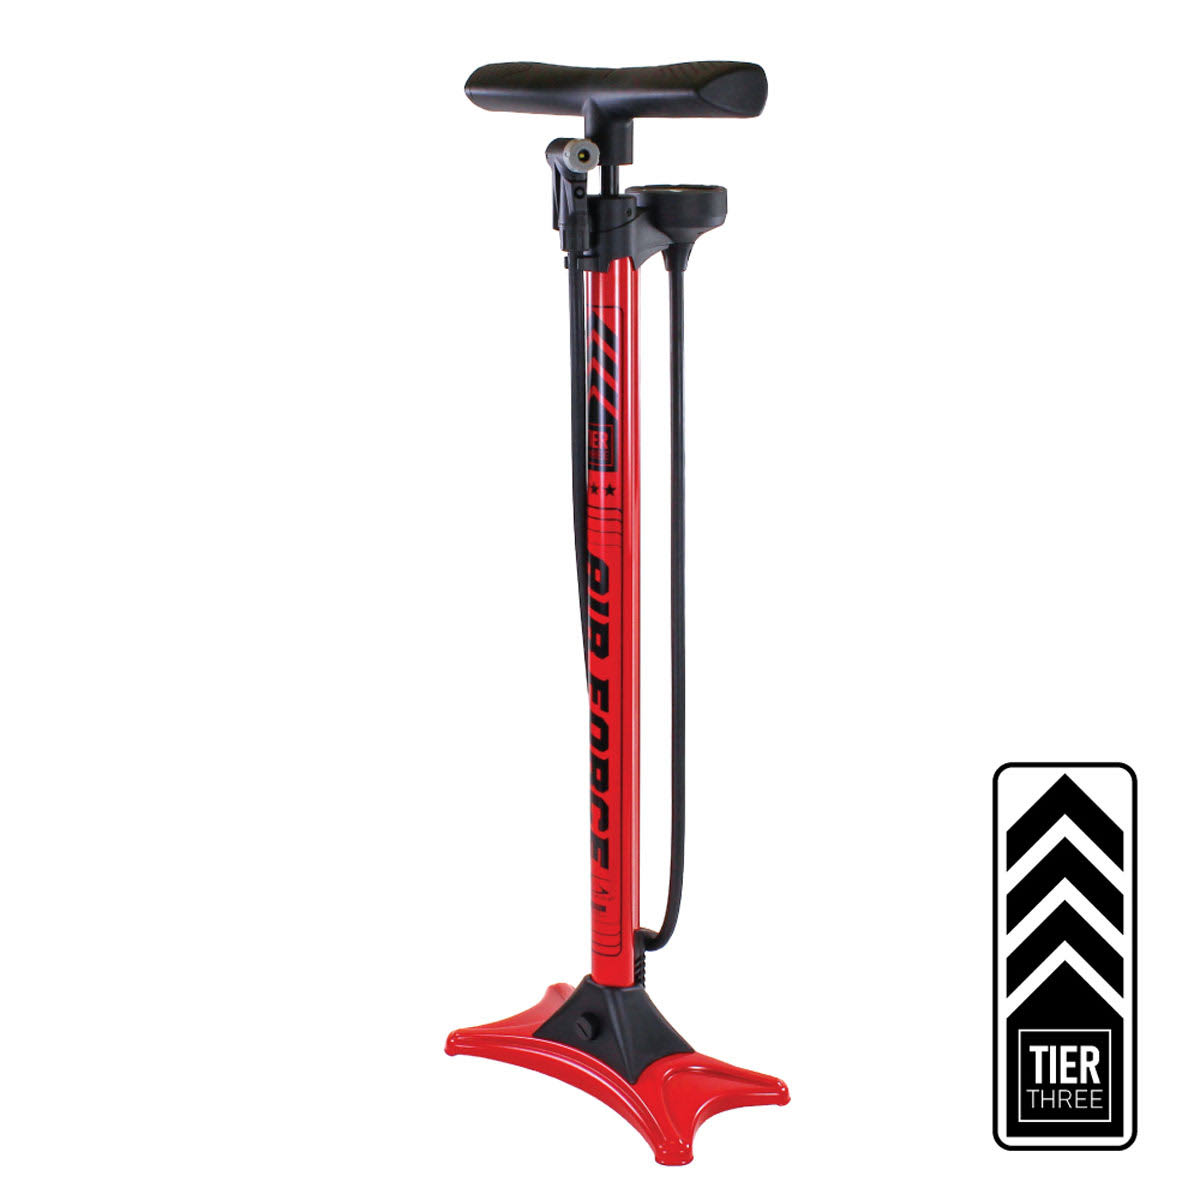 Serfas FP-T3 Air Force Tier Three Bicycle Floor Pump (Red)